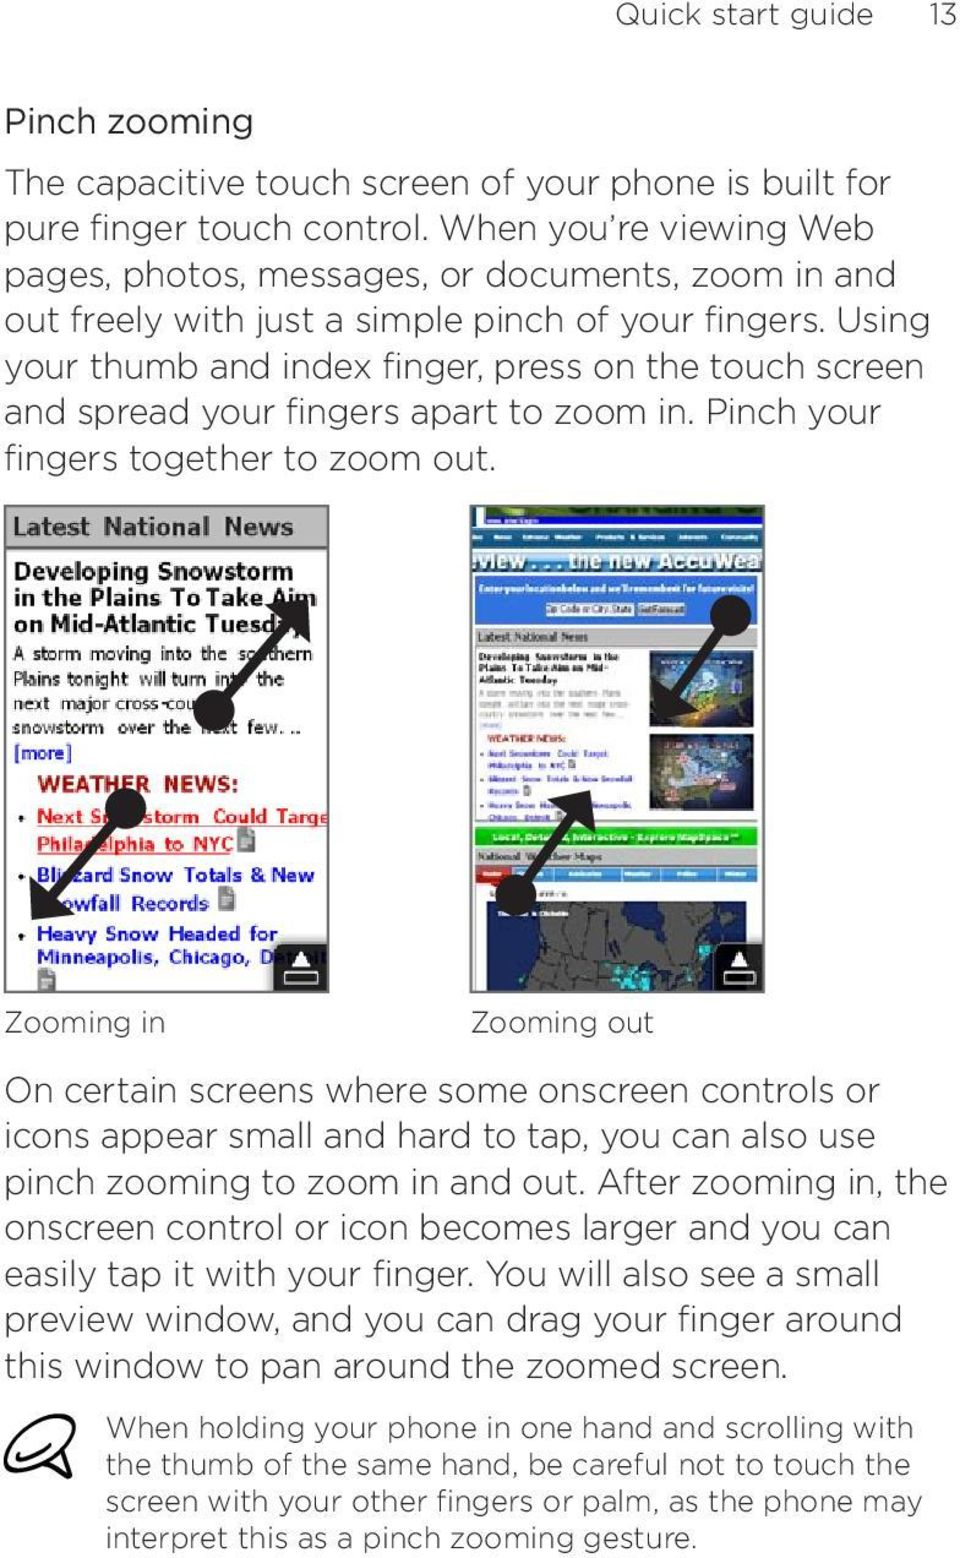 Using your thumb and index finger, press on the touch screen and spread your fingers apart to zoom in. Pinch your fingers together to zoom out.